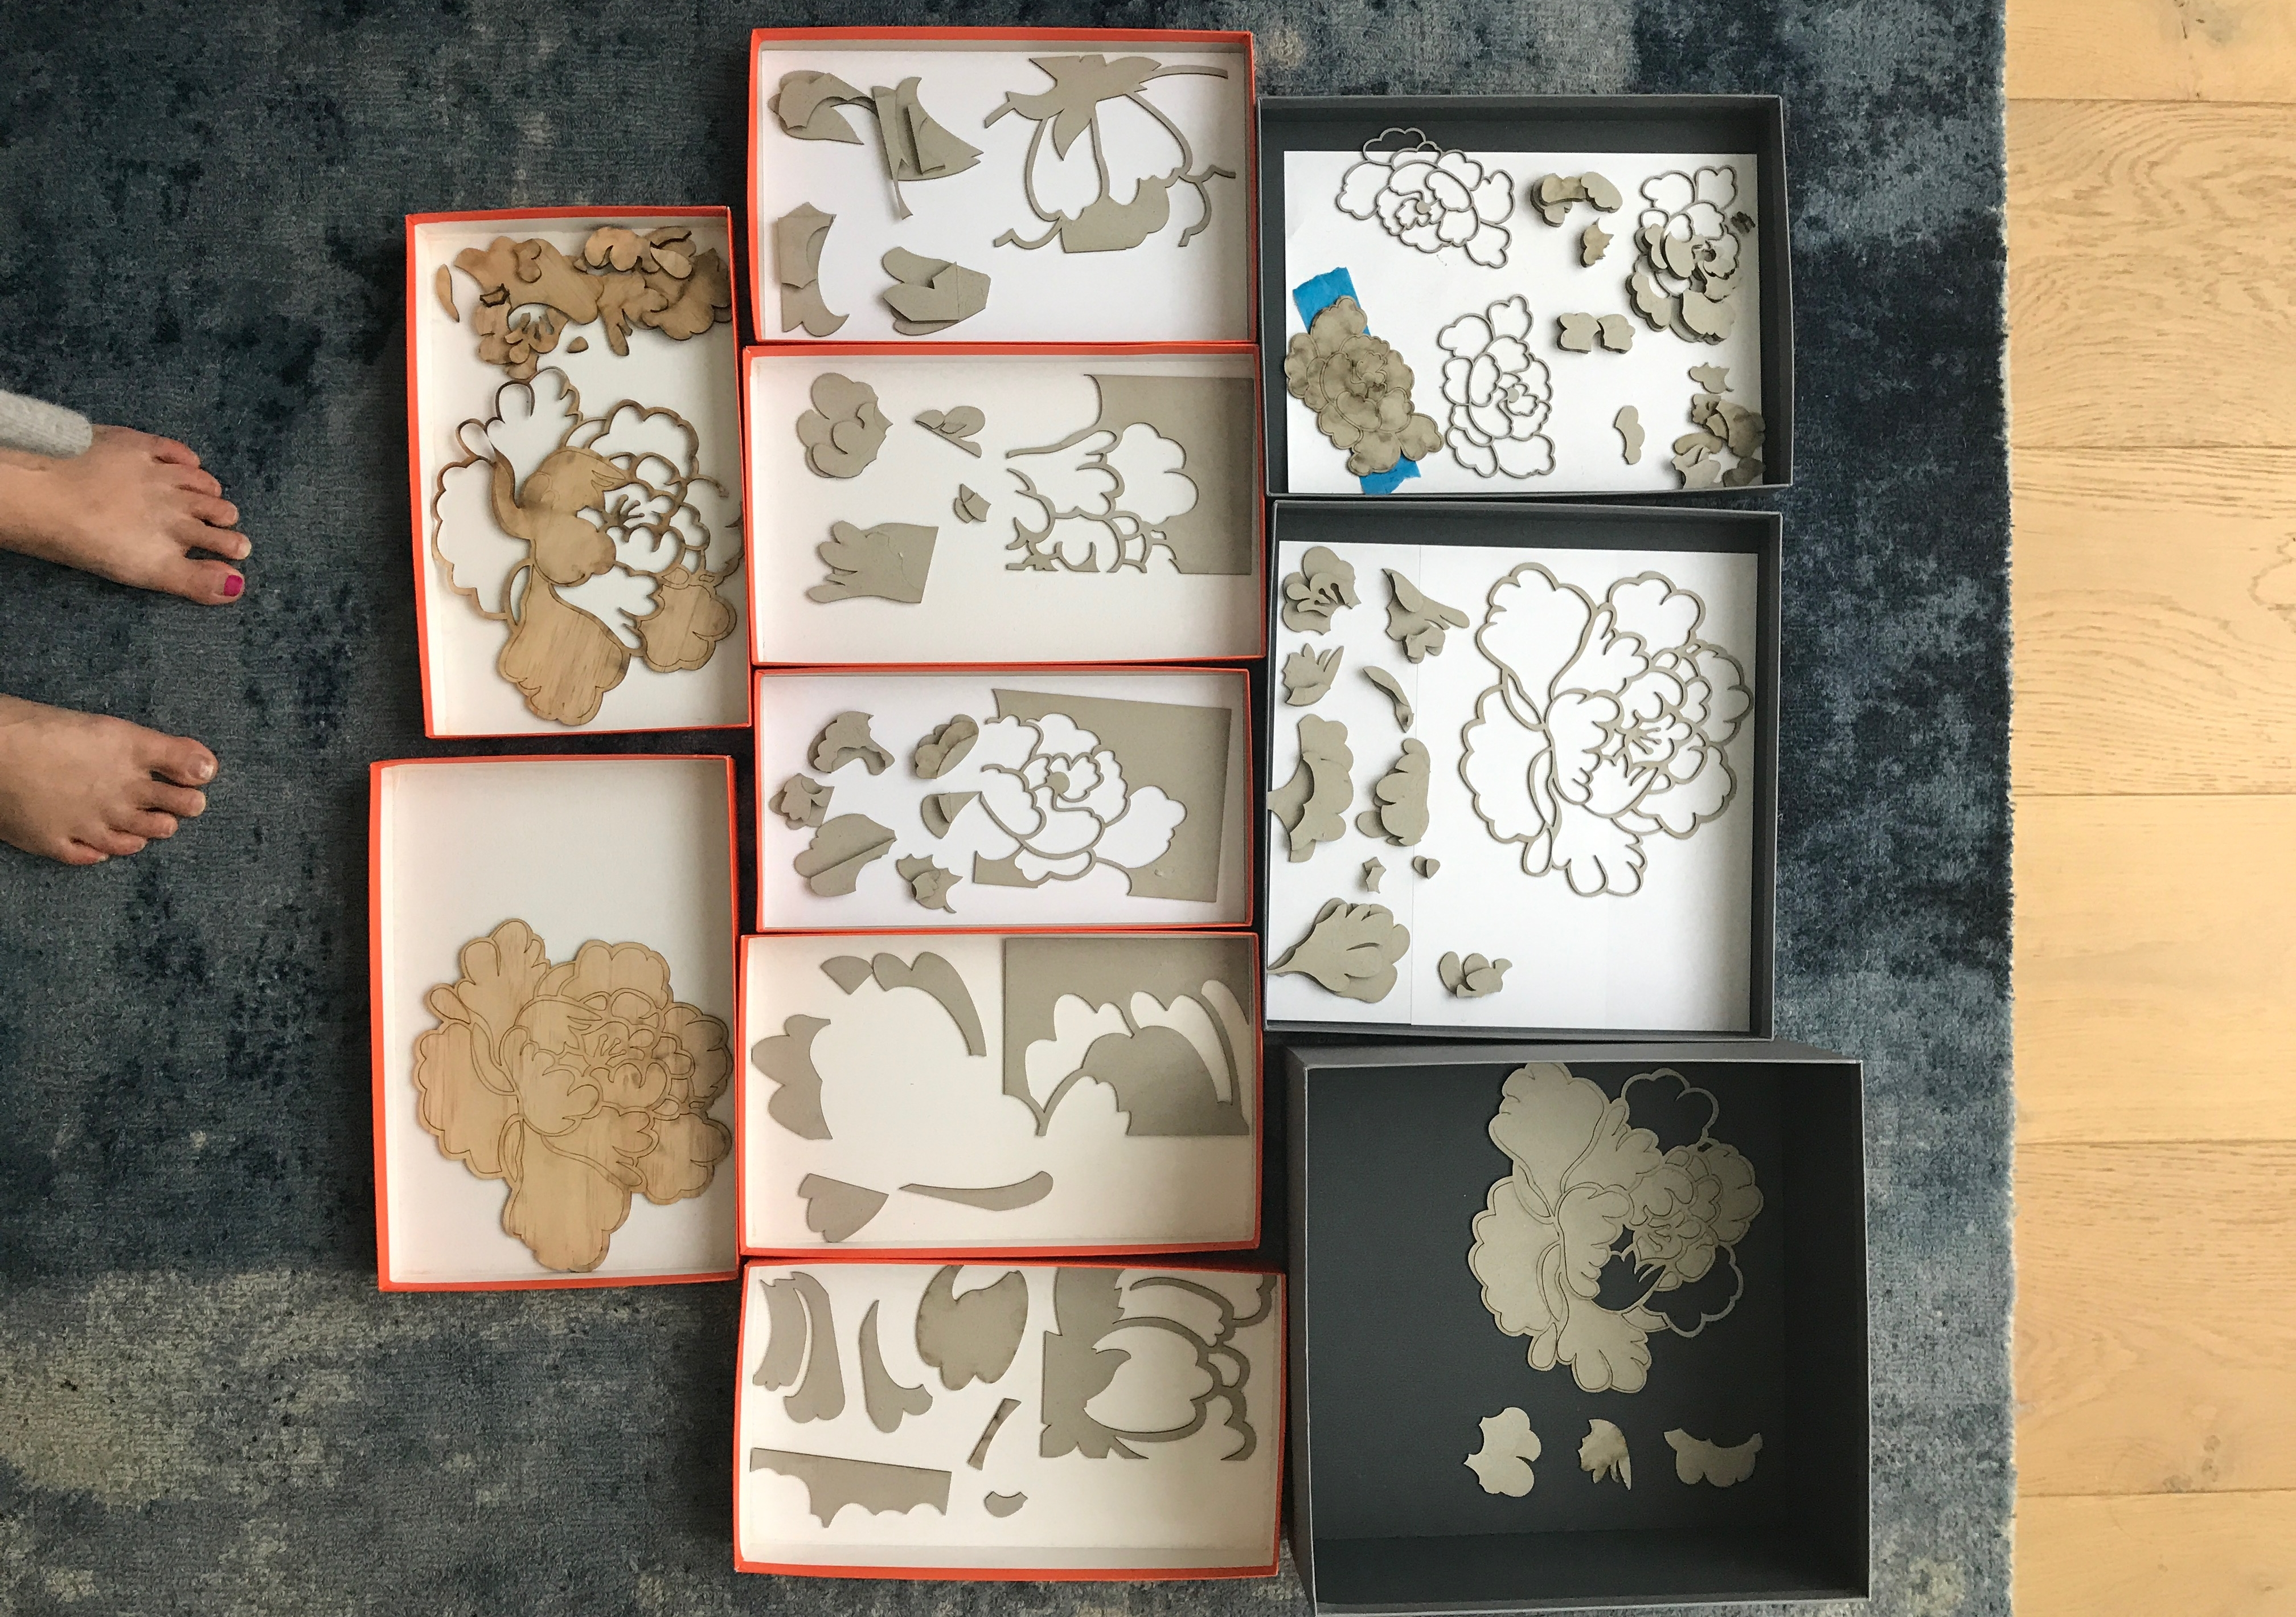 Studies of laser-cut peonies in boxes on the floor